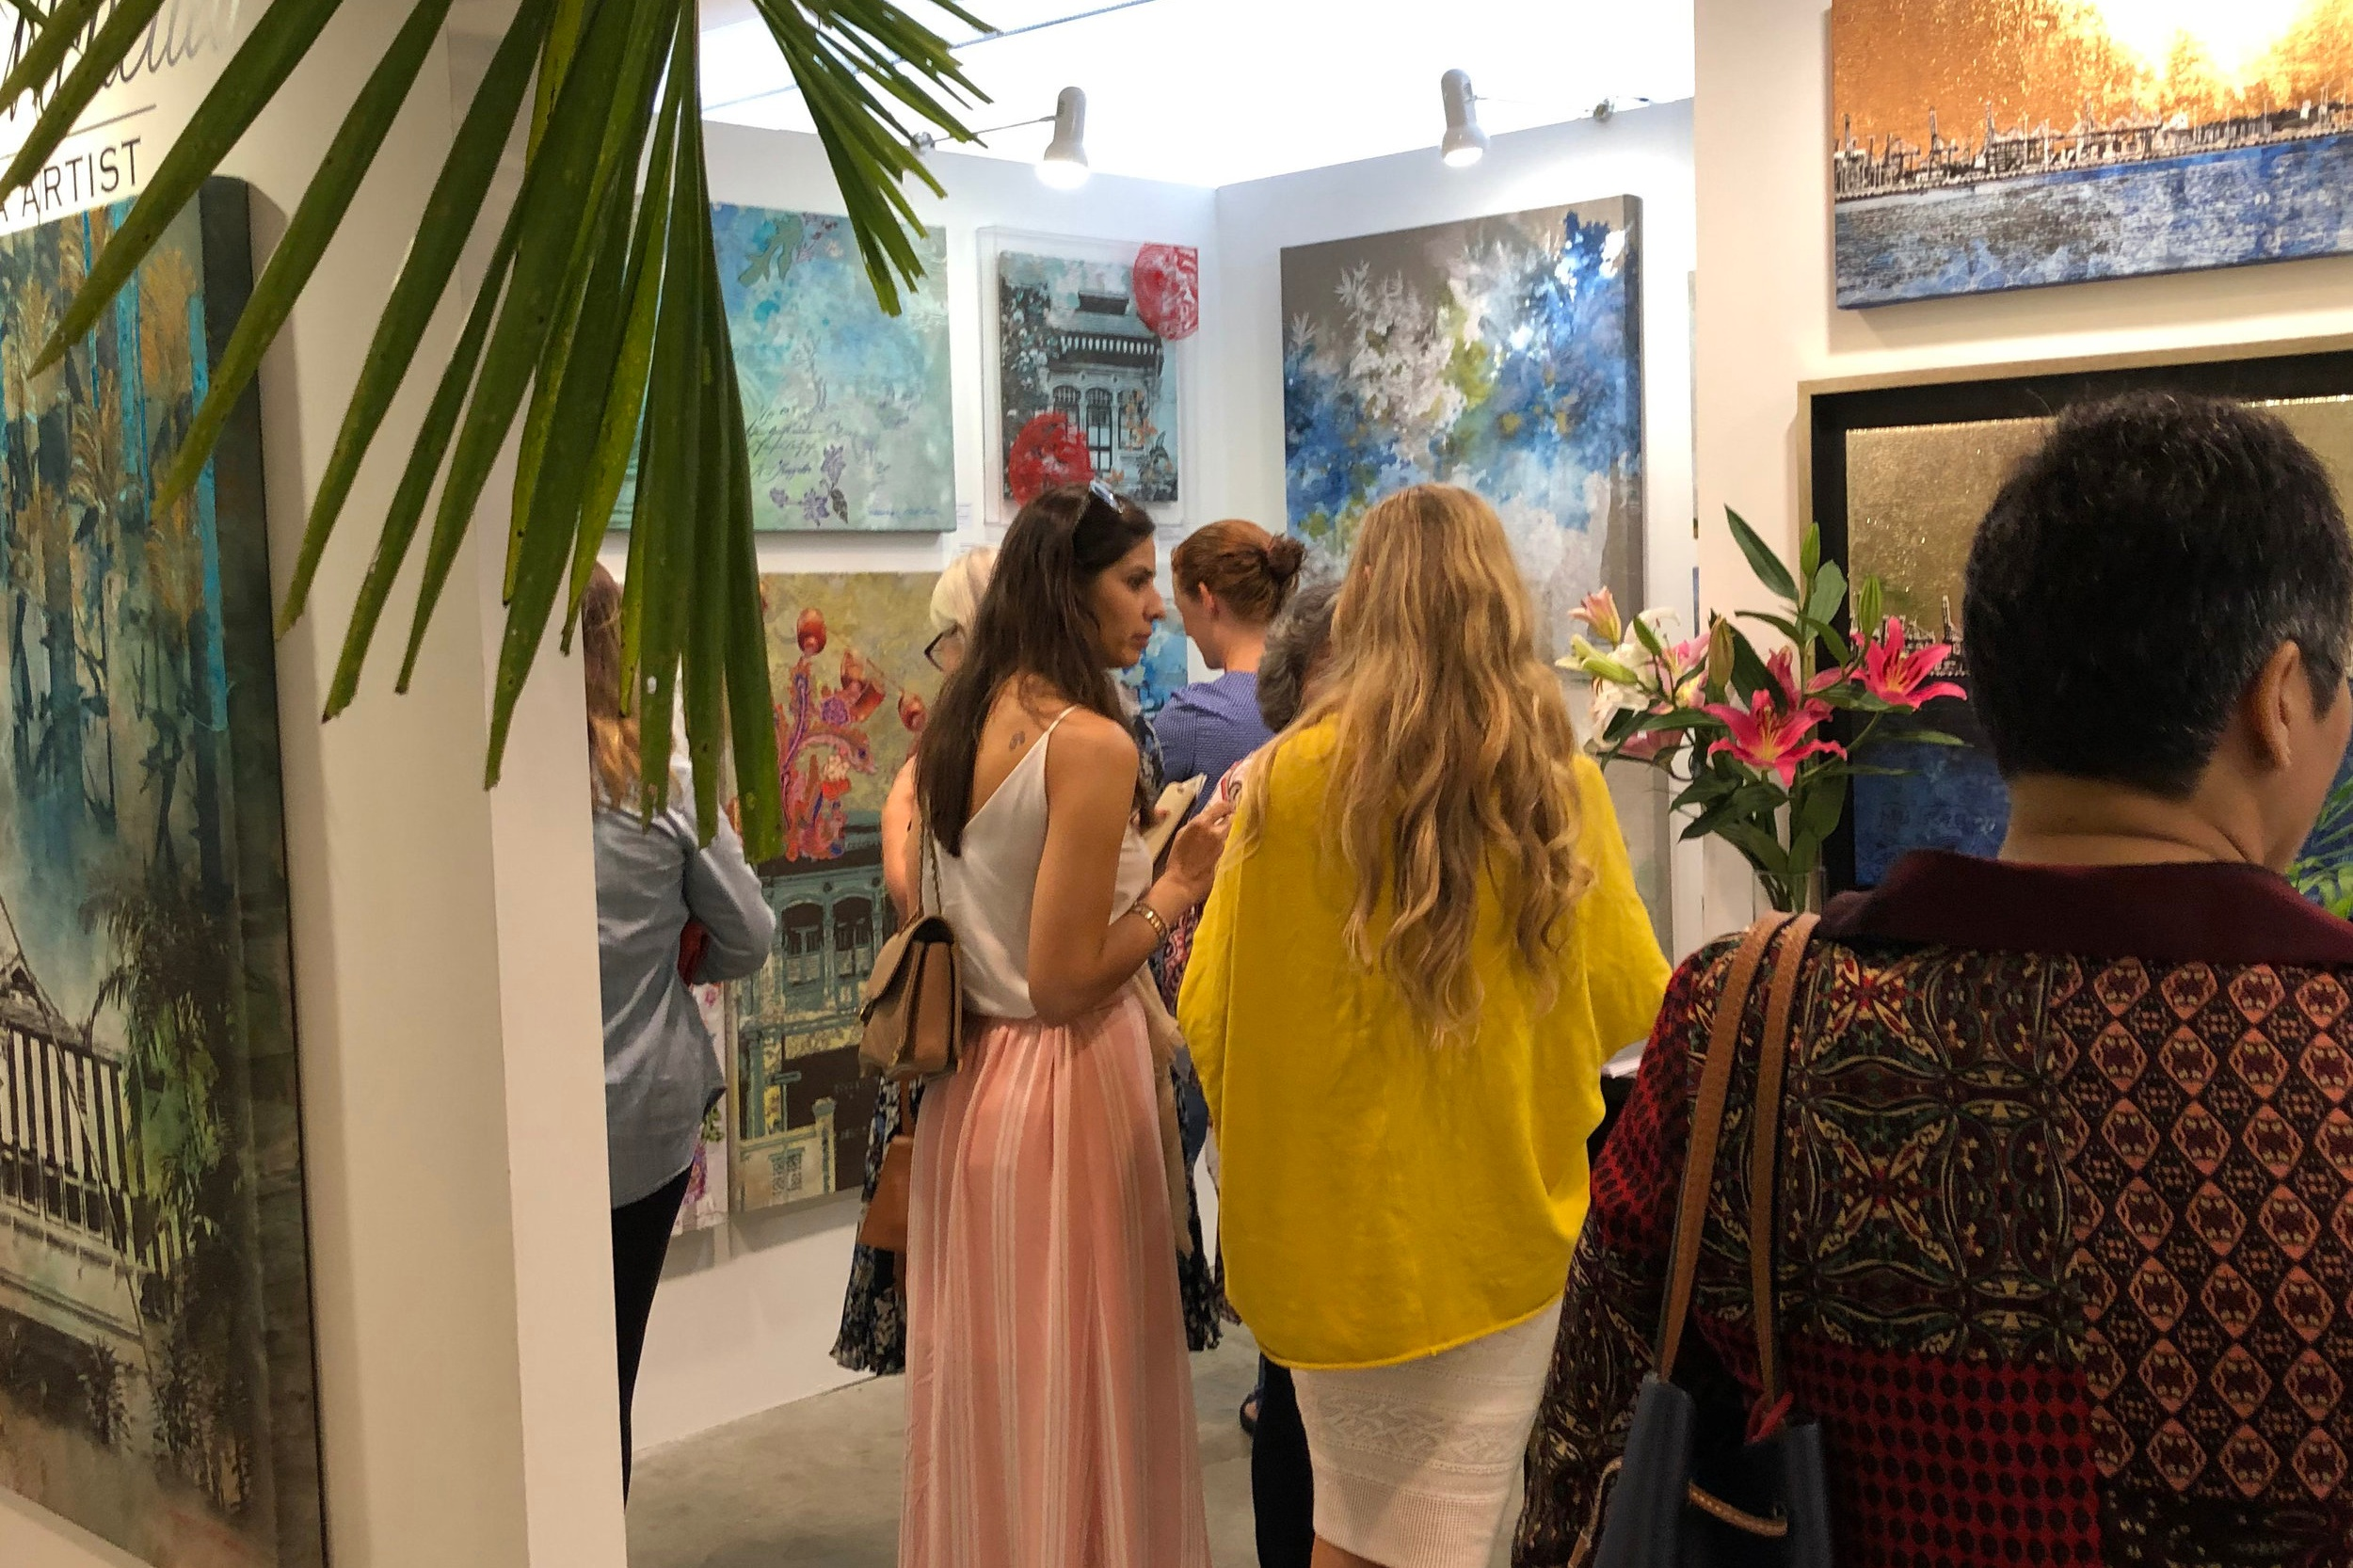 Affordable Art Fair - 2018, Singapore